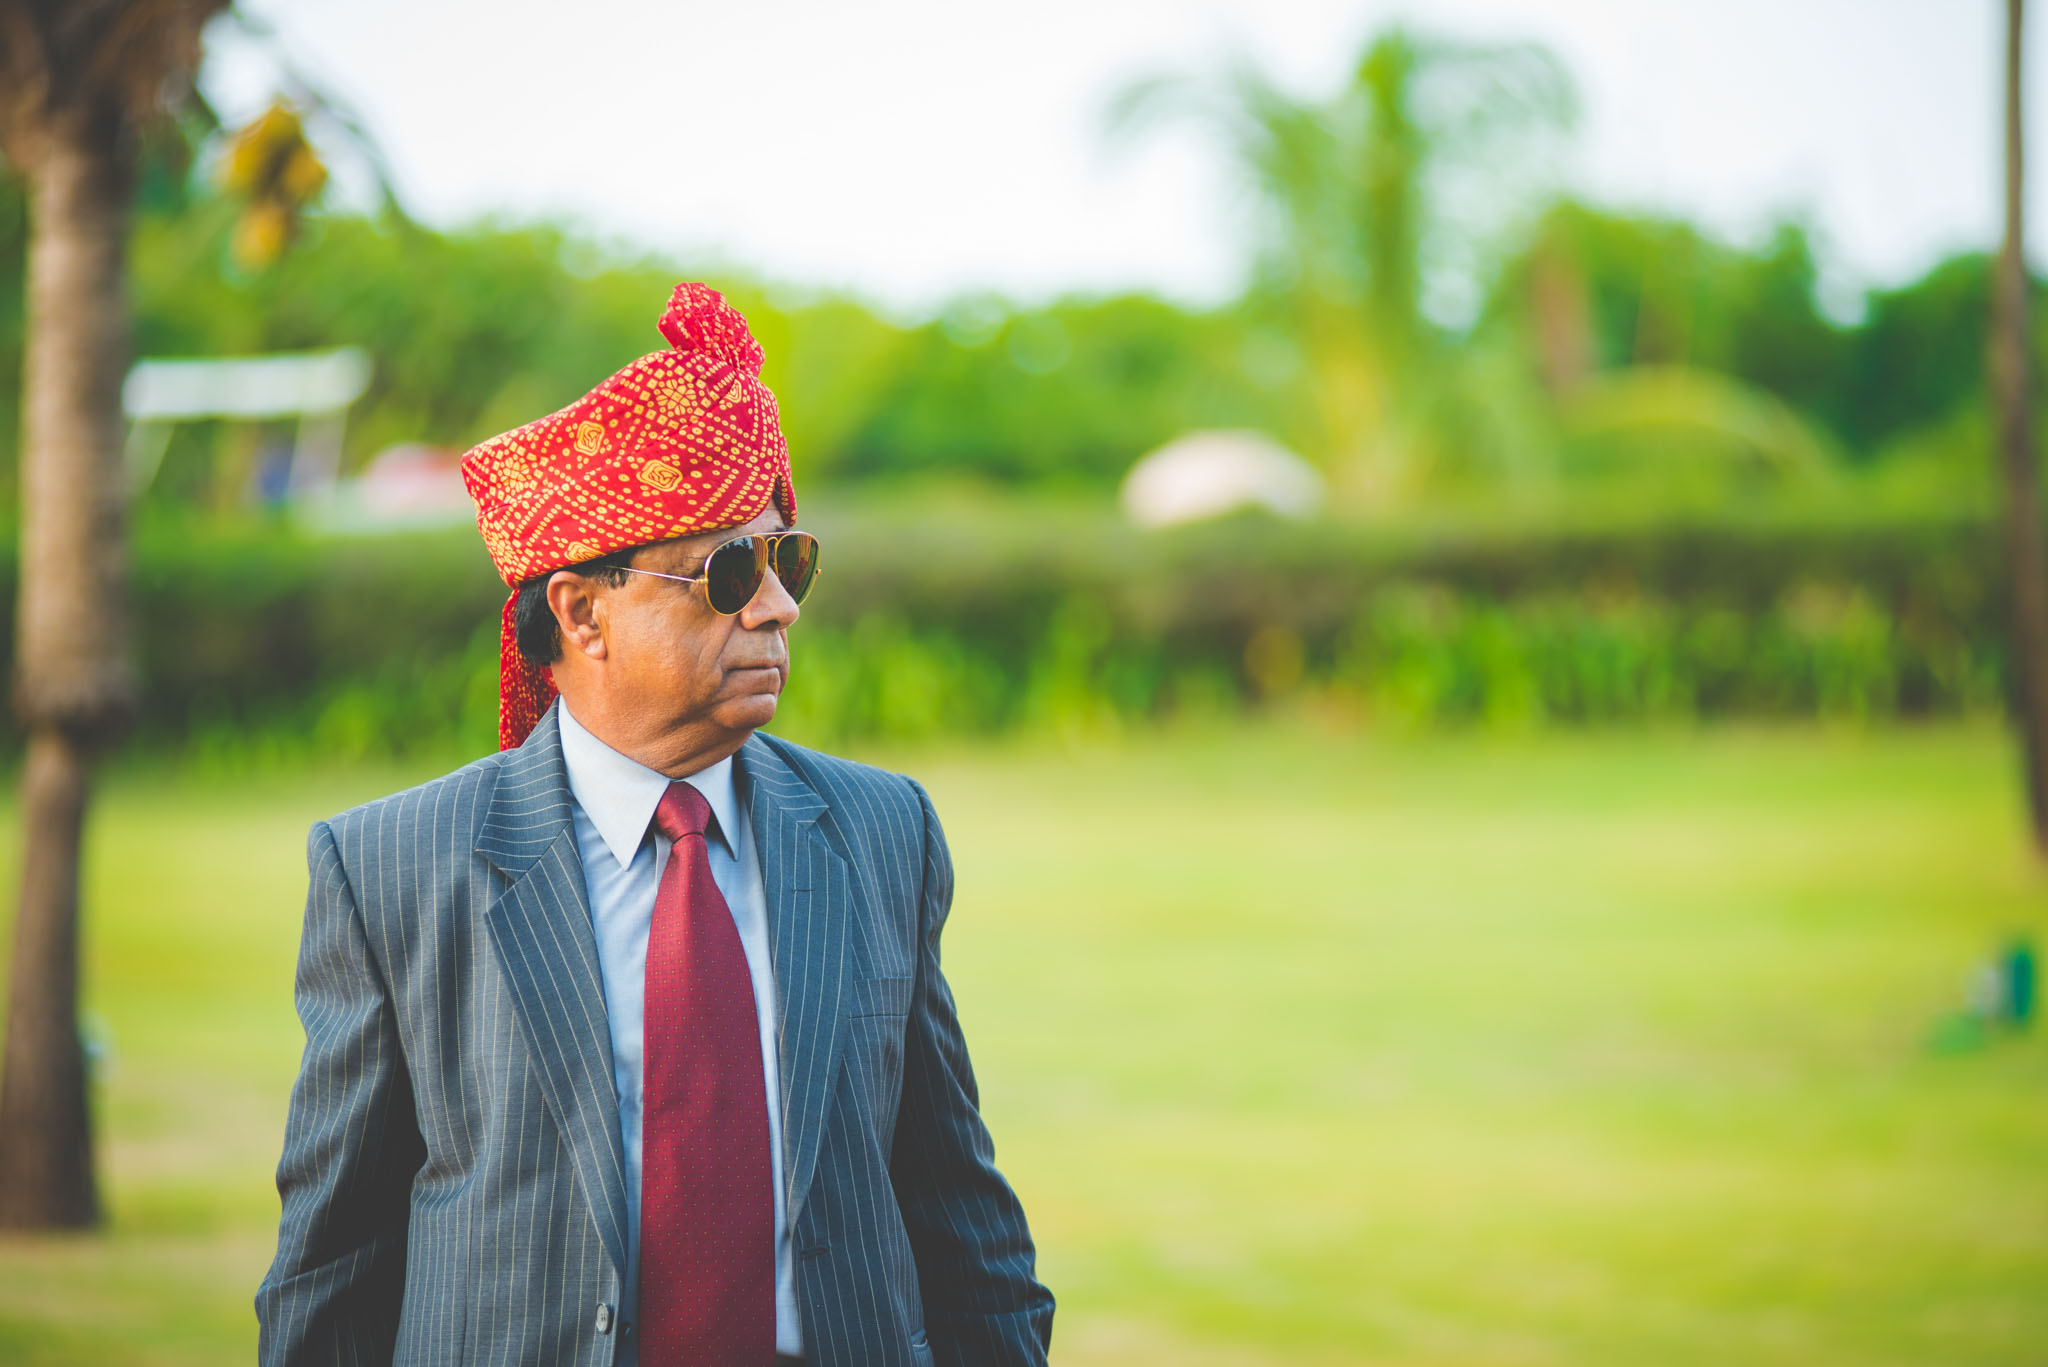 Candid-Wedding-Photography-WhatKnot-Goa-93